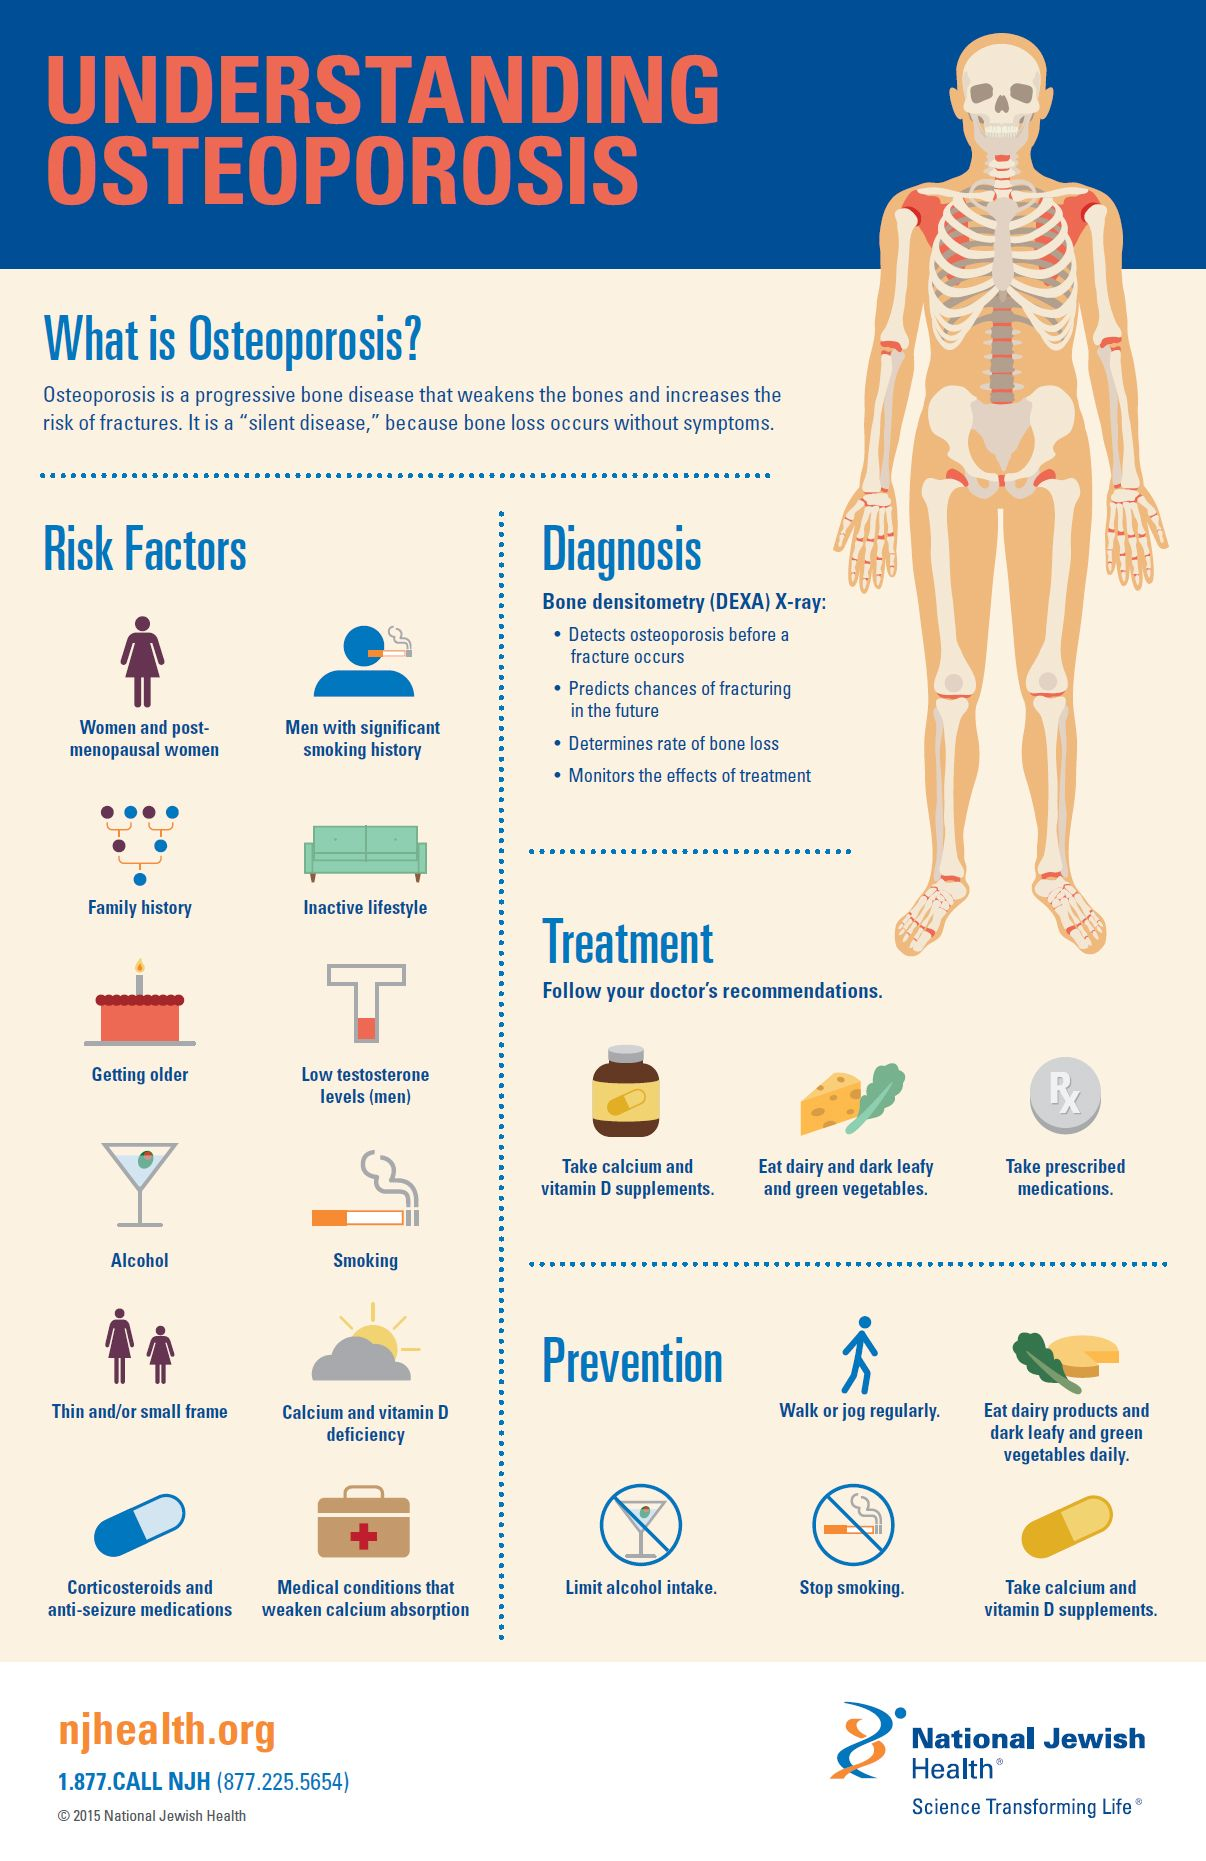 12++ Loss of which hormone contributes to osteoporosis ideas